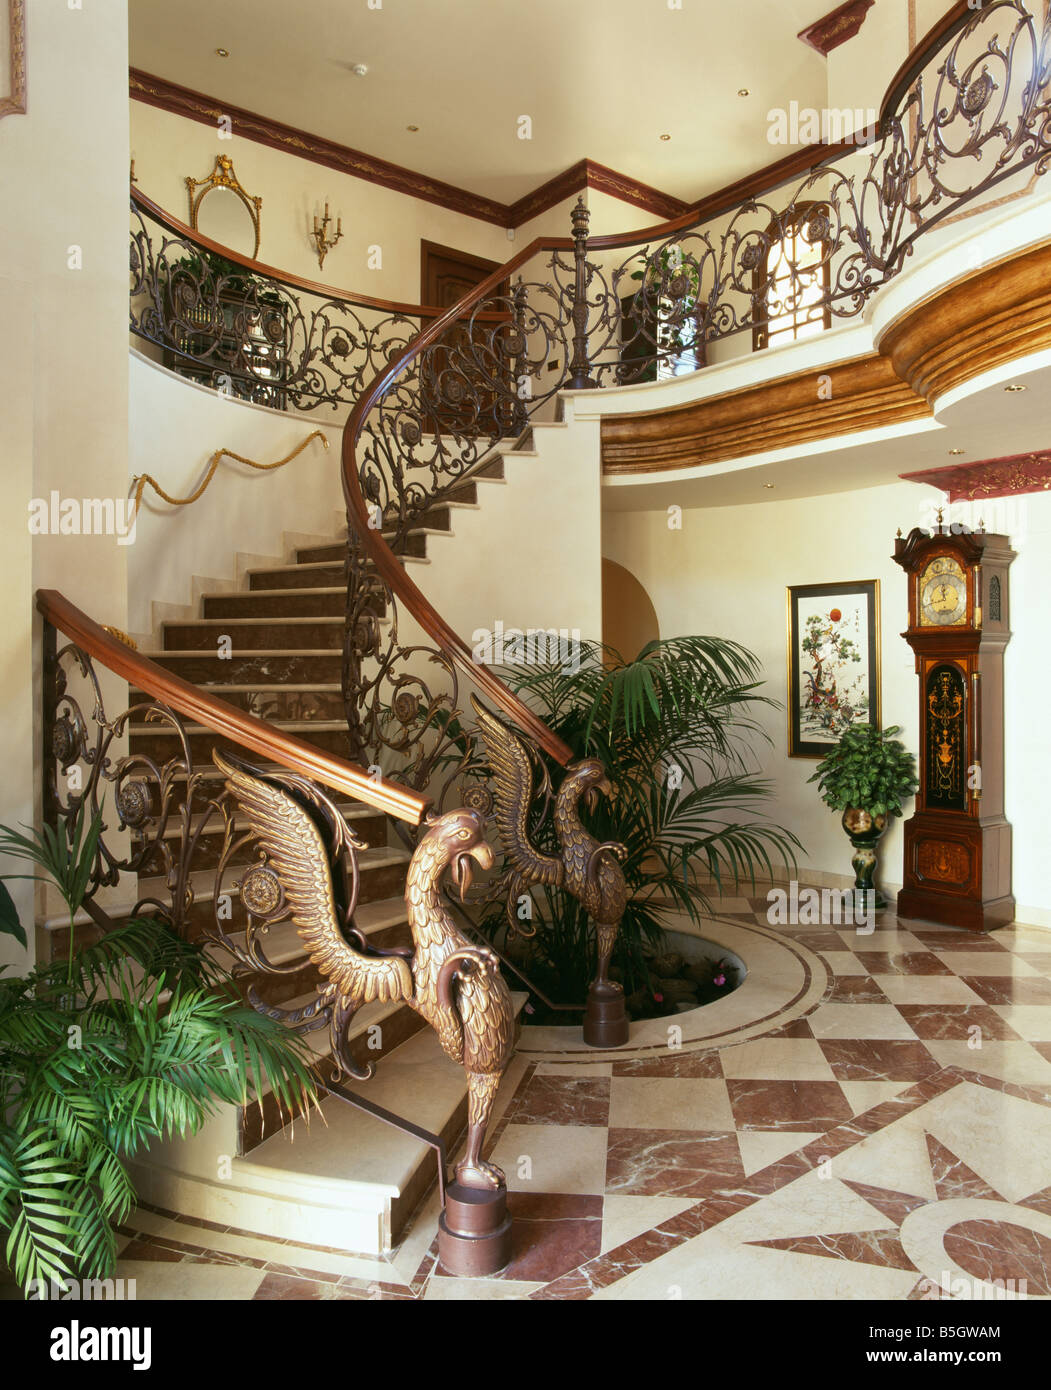 Traditional spanish tiling stock photos traditional spanish ornate wrought iron bannisteers on curved staircase in spanish hall with brown white marble dailygadgetfo Images